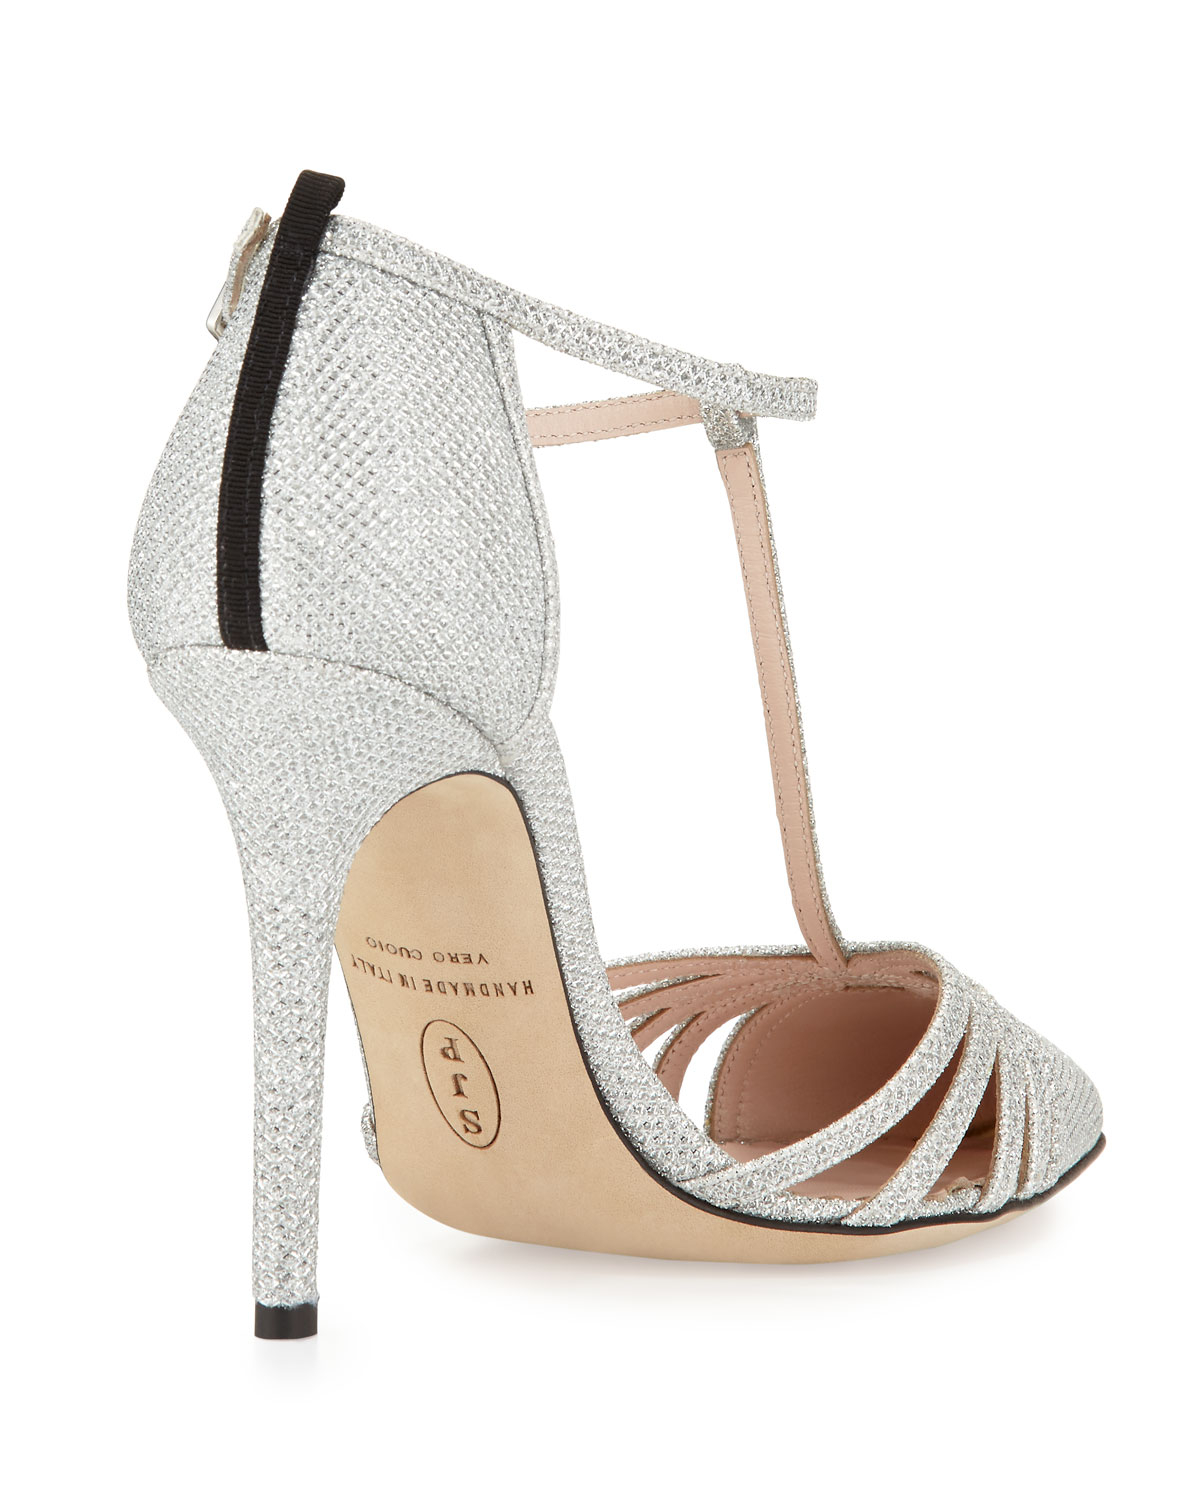 f44be1ddac8 Lyst - SJP by Sarah Jessica Parker Carrie Sparkle Lamé T-Strap Pump in  Metallic